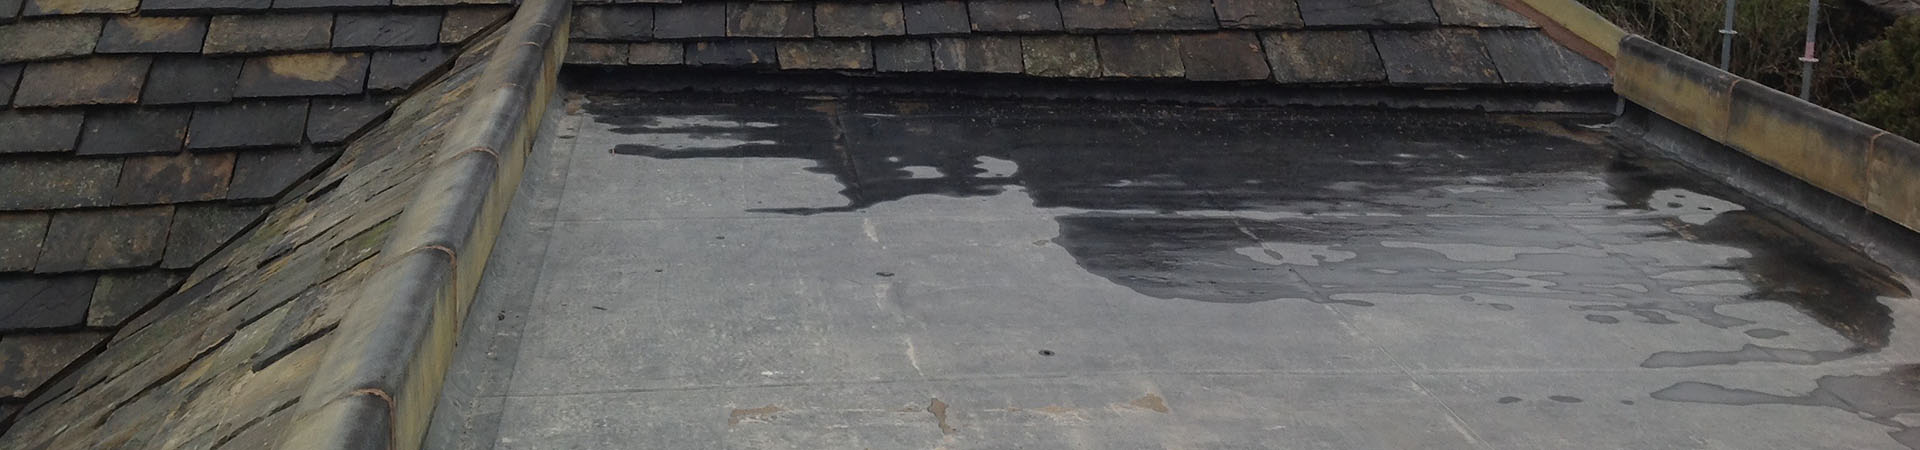 single ply roofing, flat roof